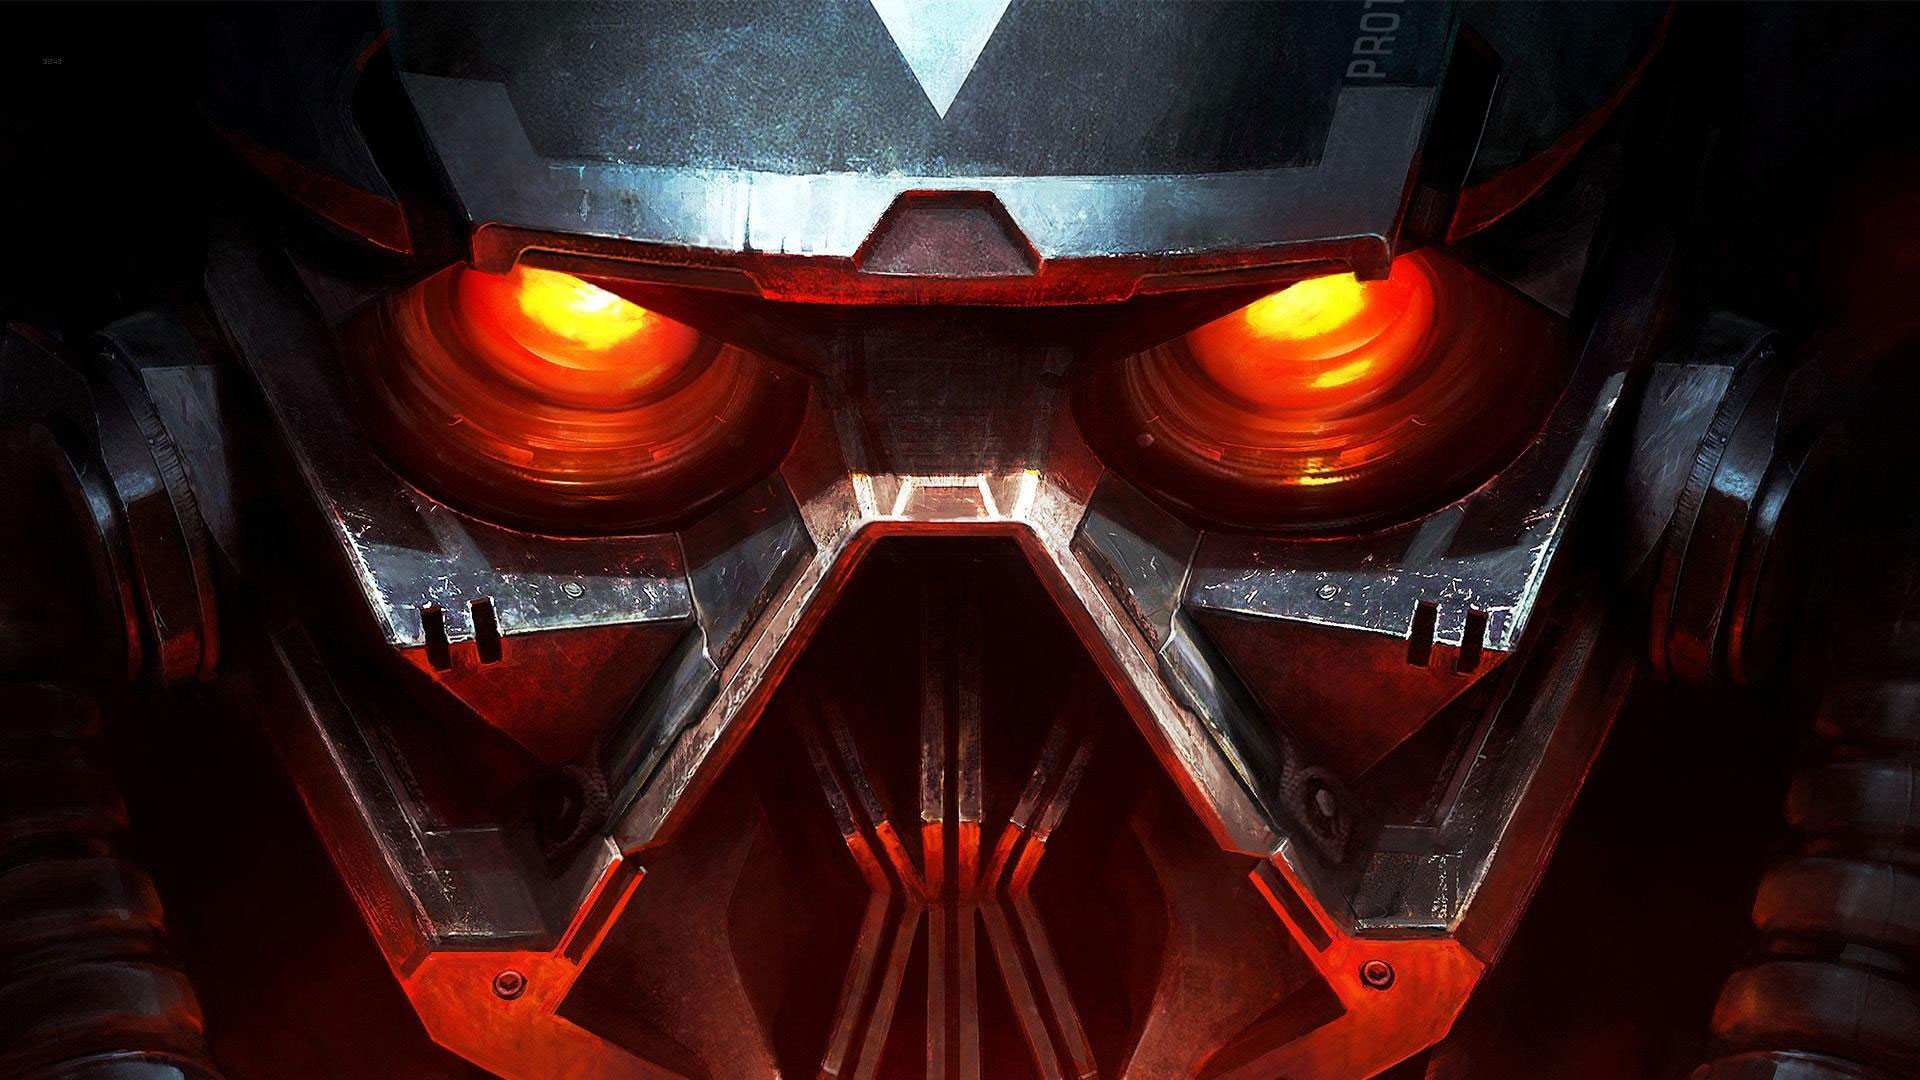 1920x1080 hd pics photos metal robot eye transformer hollywood glowing red eye  technology hd quality desktop background